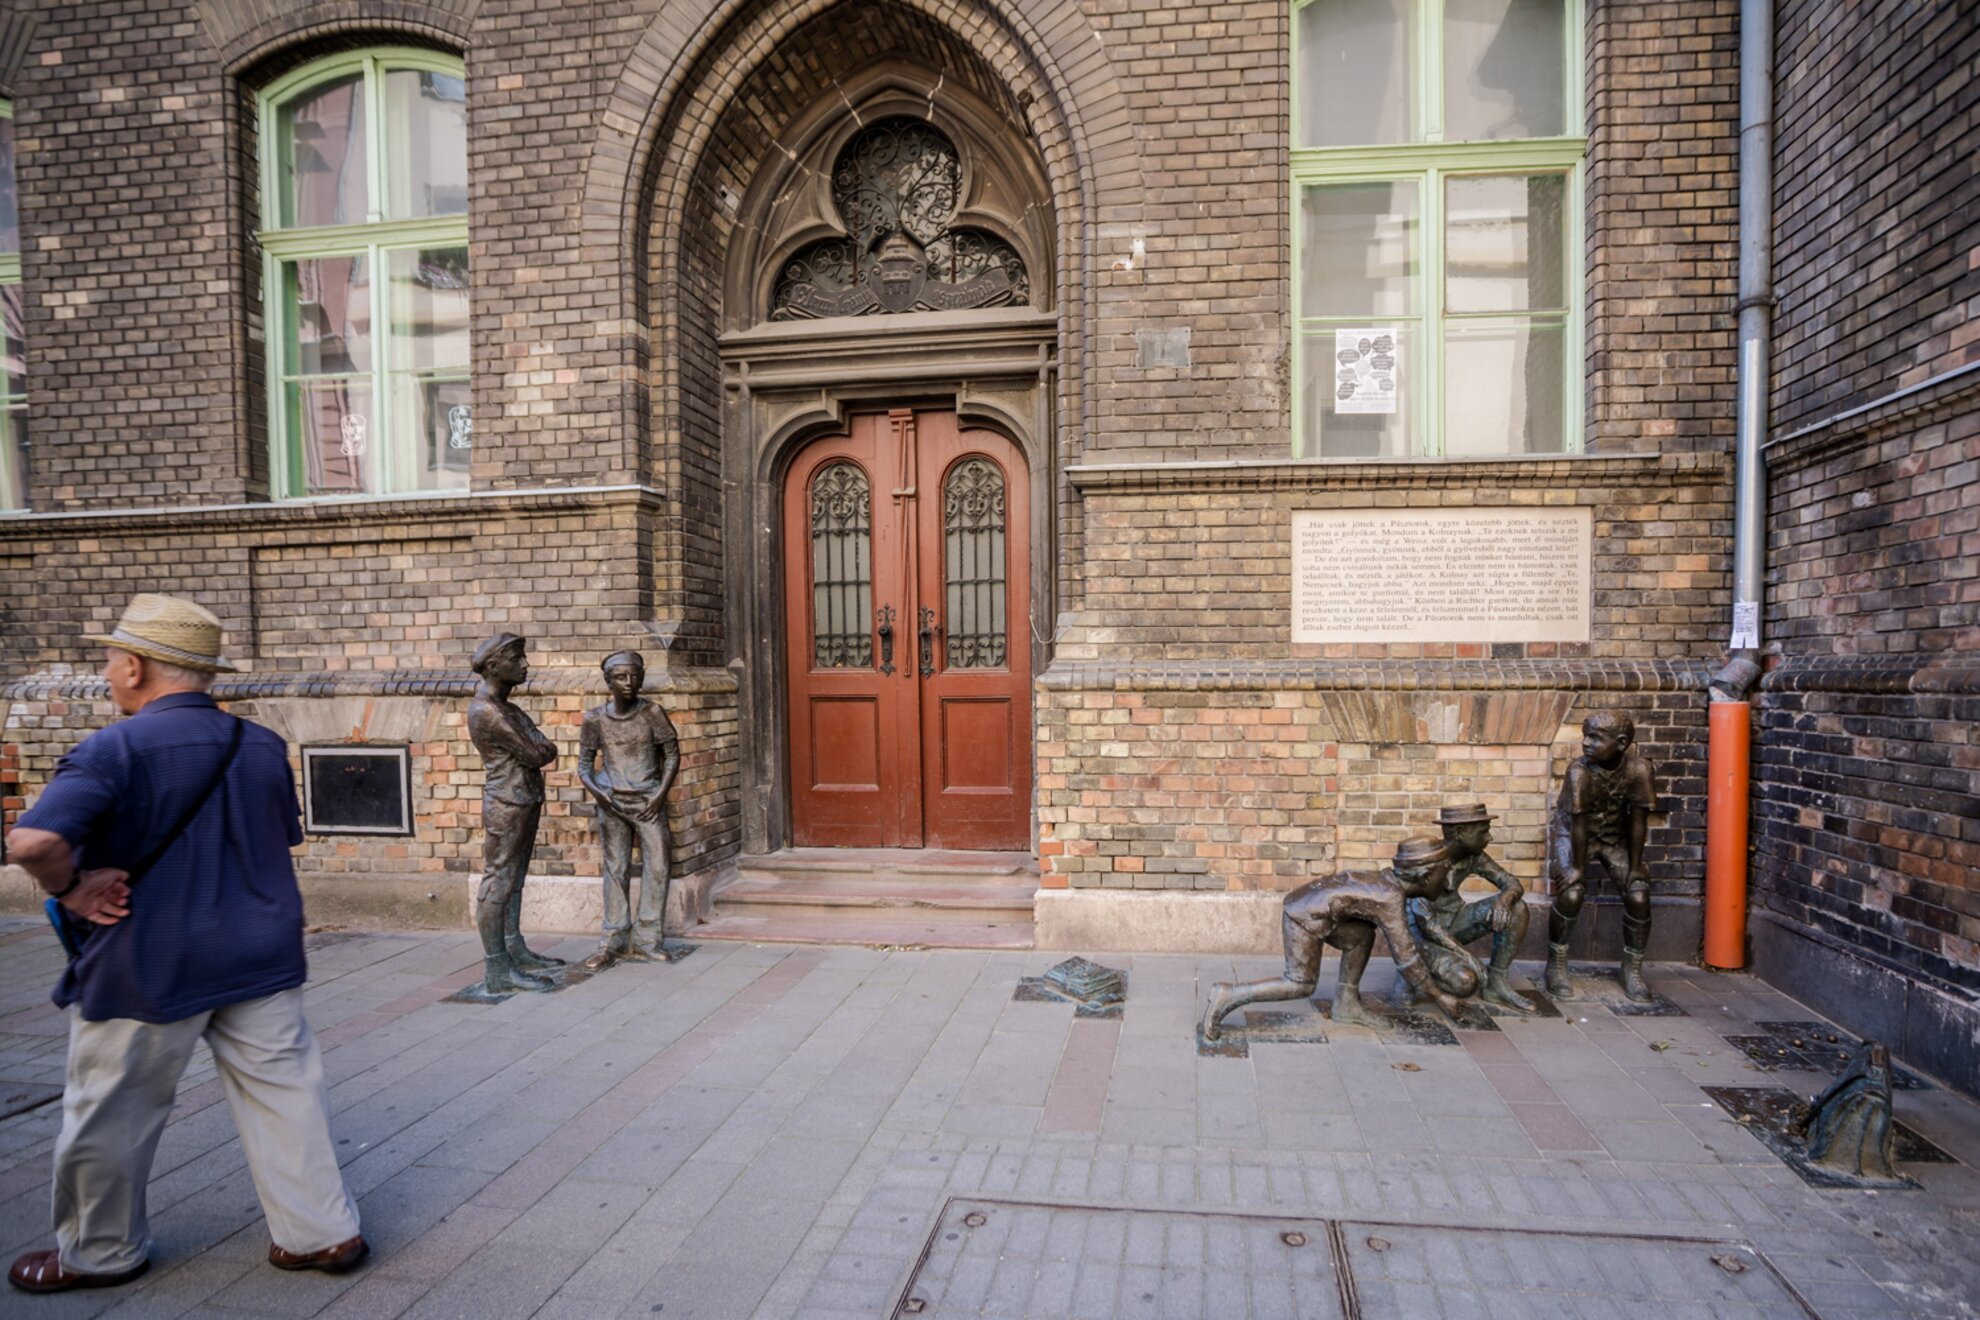 10 unusual statues in Budapest